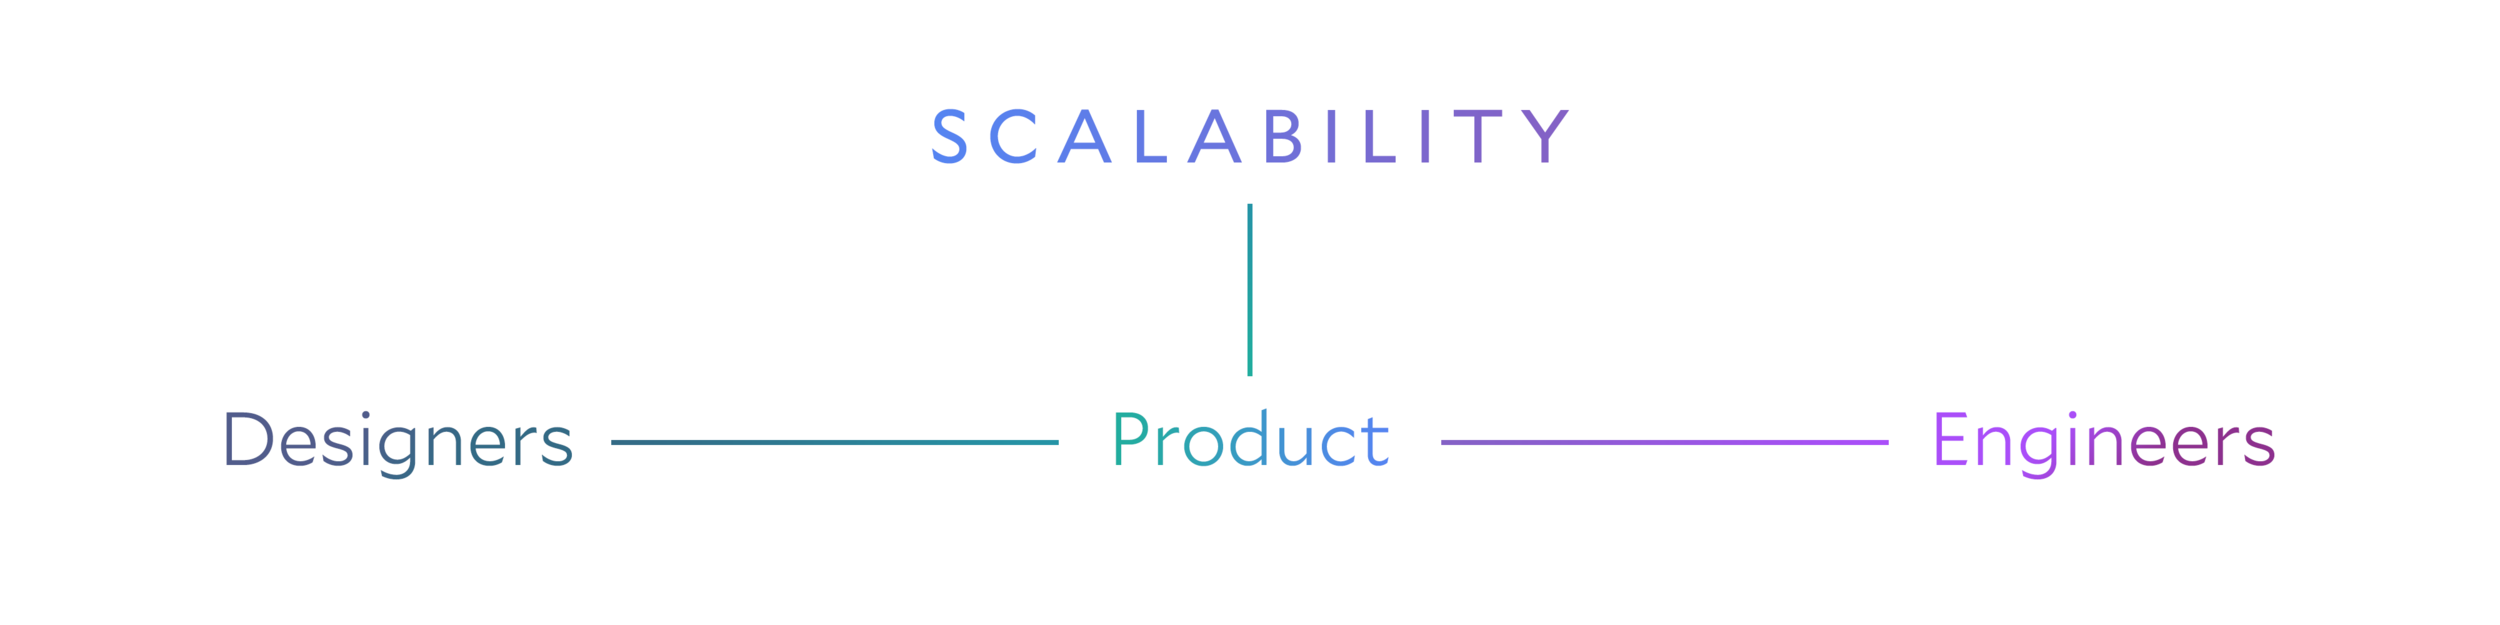 DS_scalability-info_2000x500@2x.png